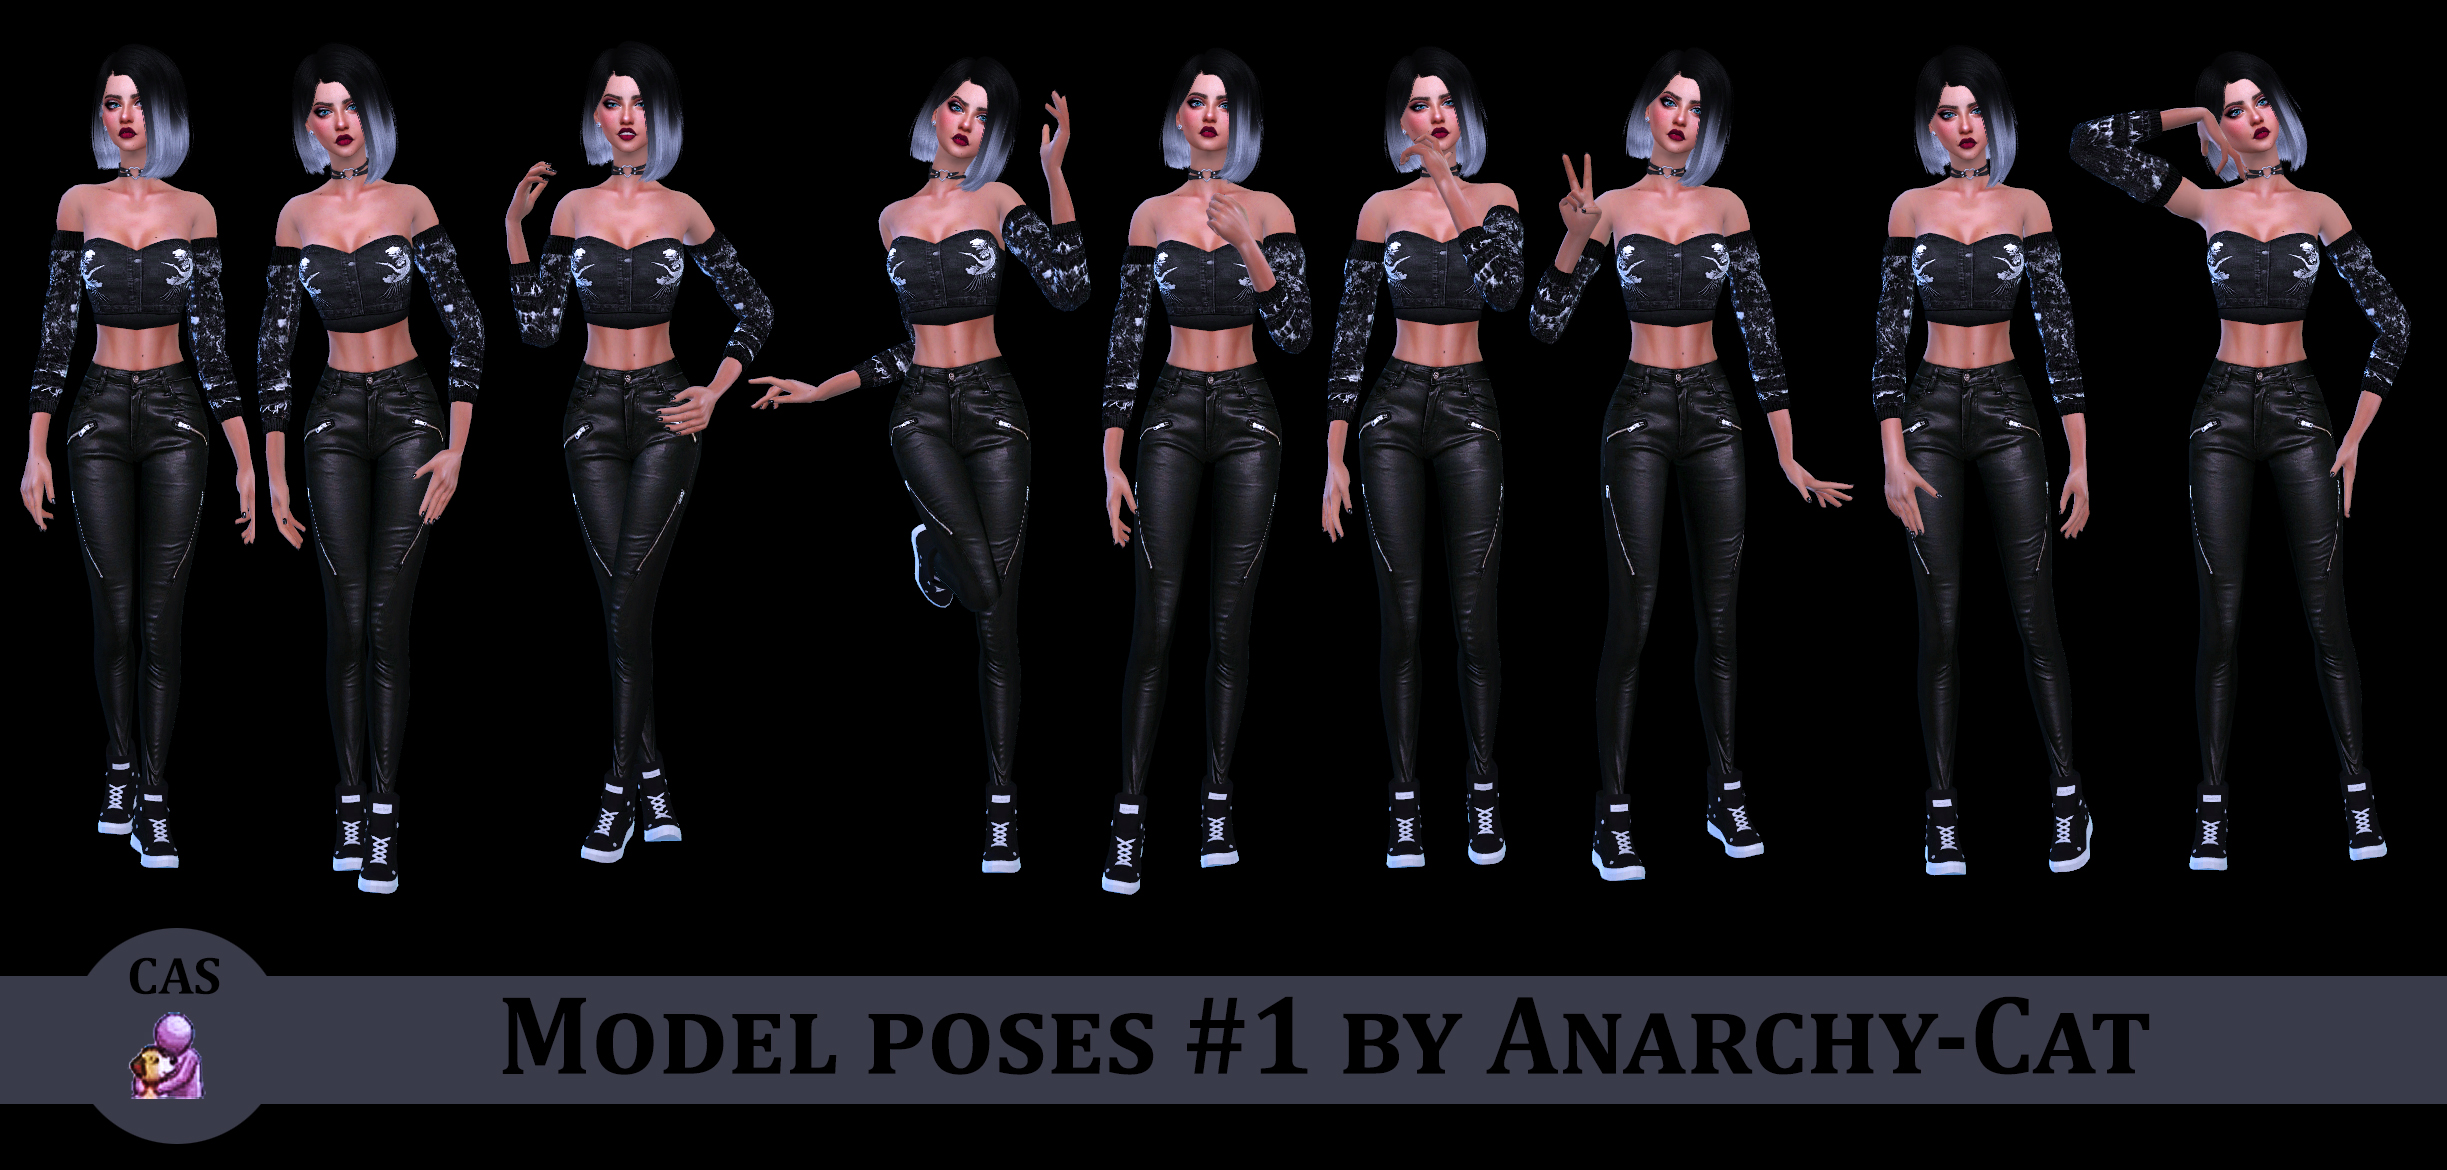 Model poses #1 by Anarchy-Cat